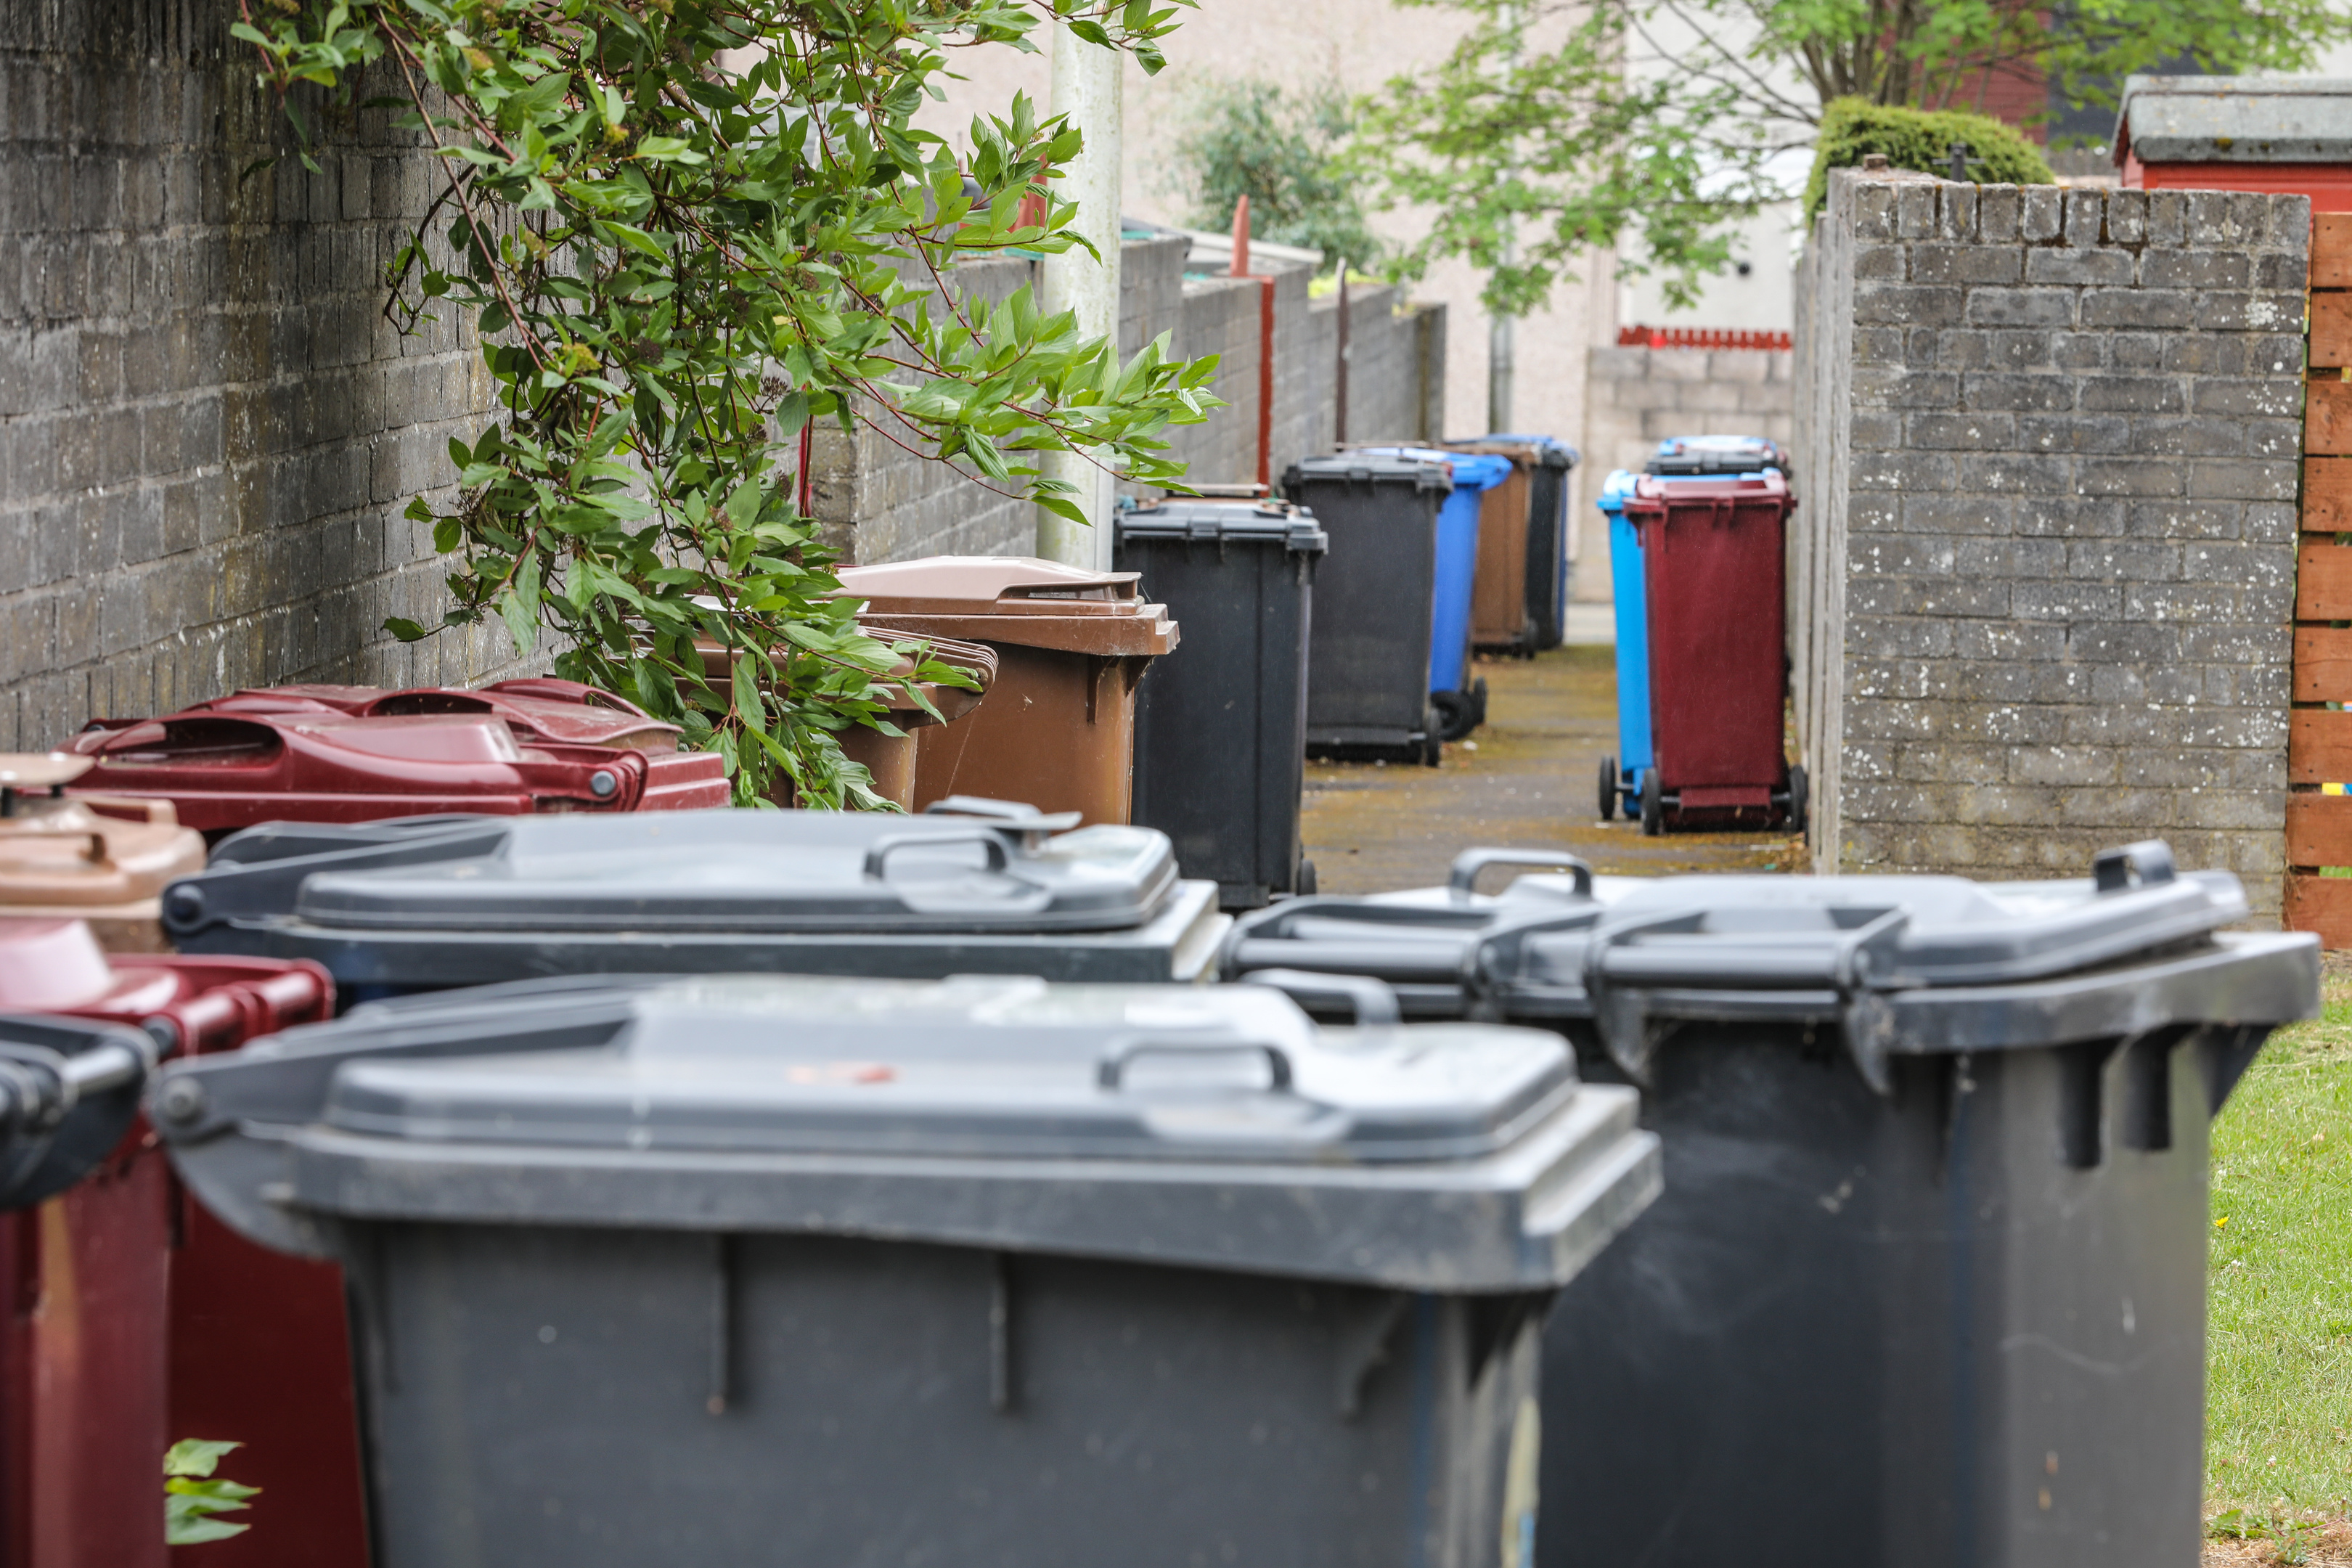 Refuse collectors will now be following new guidance